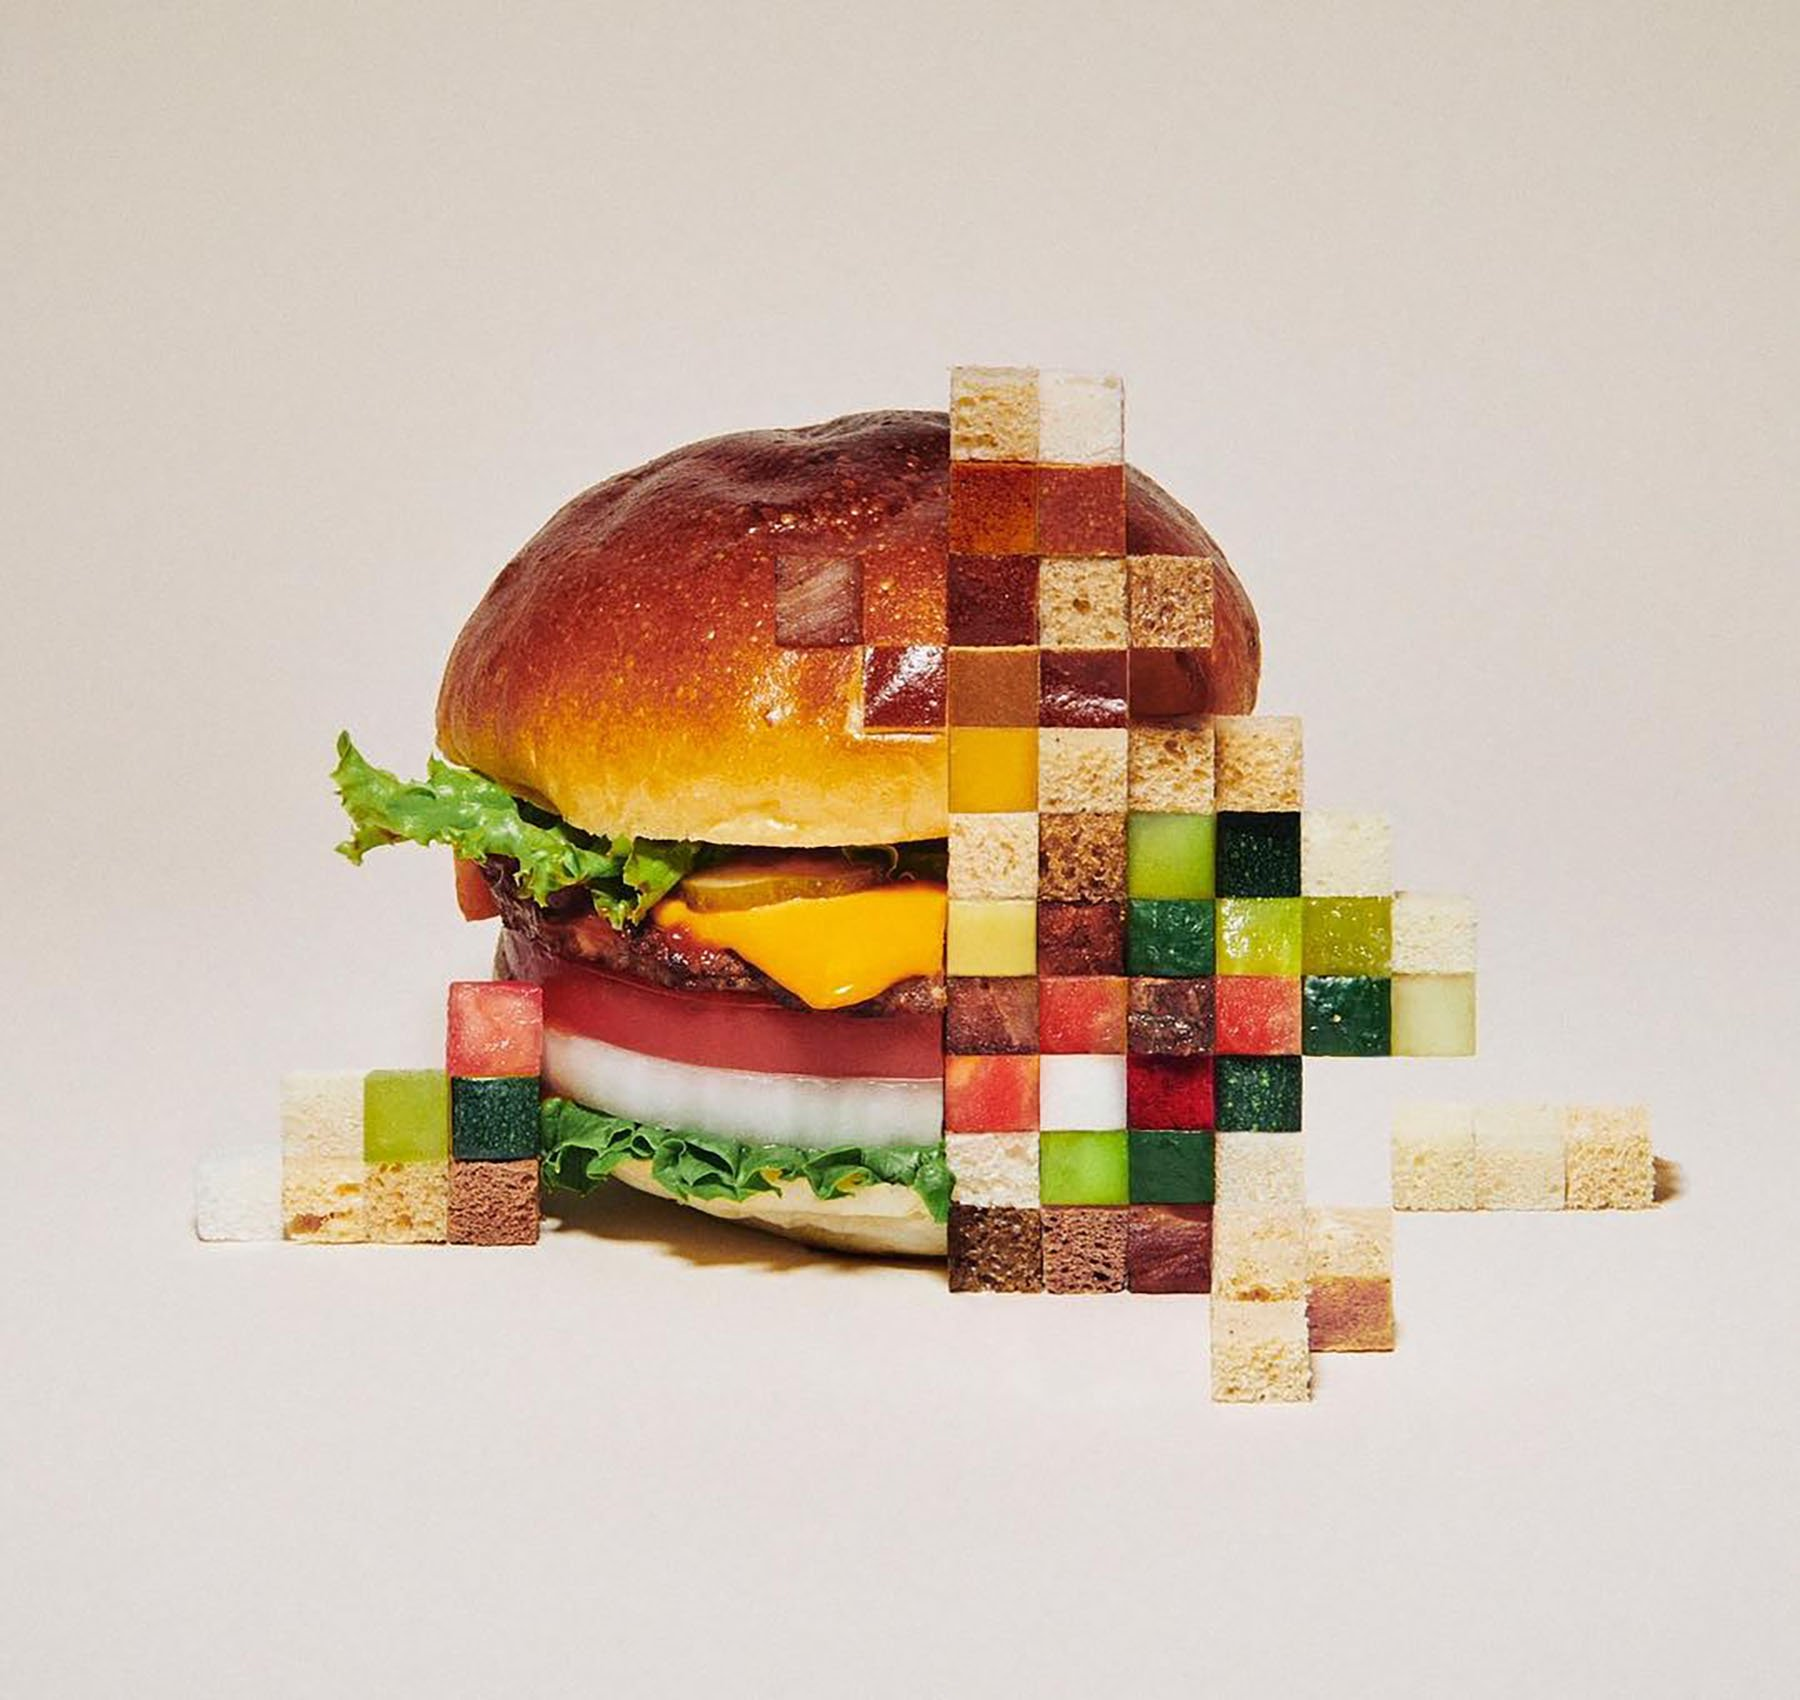 iGNANT-Photography-Yuni-Yoshida-Pixelated-Food-001